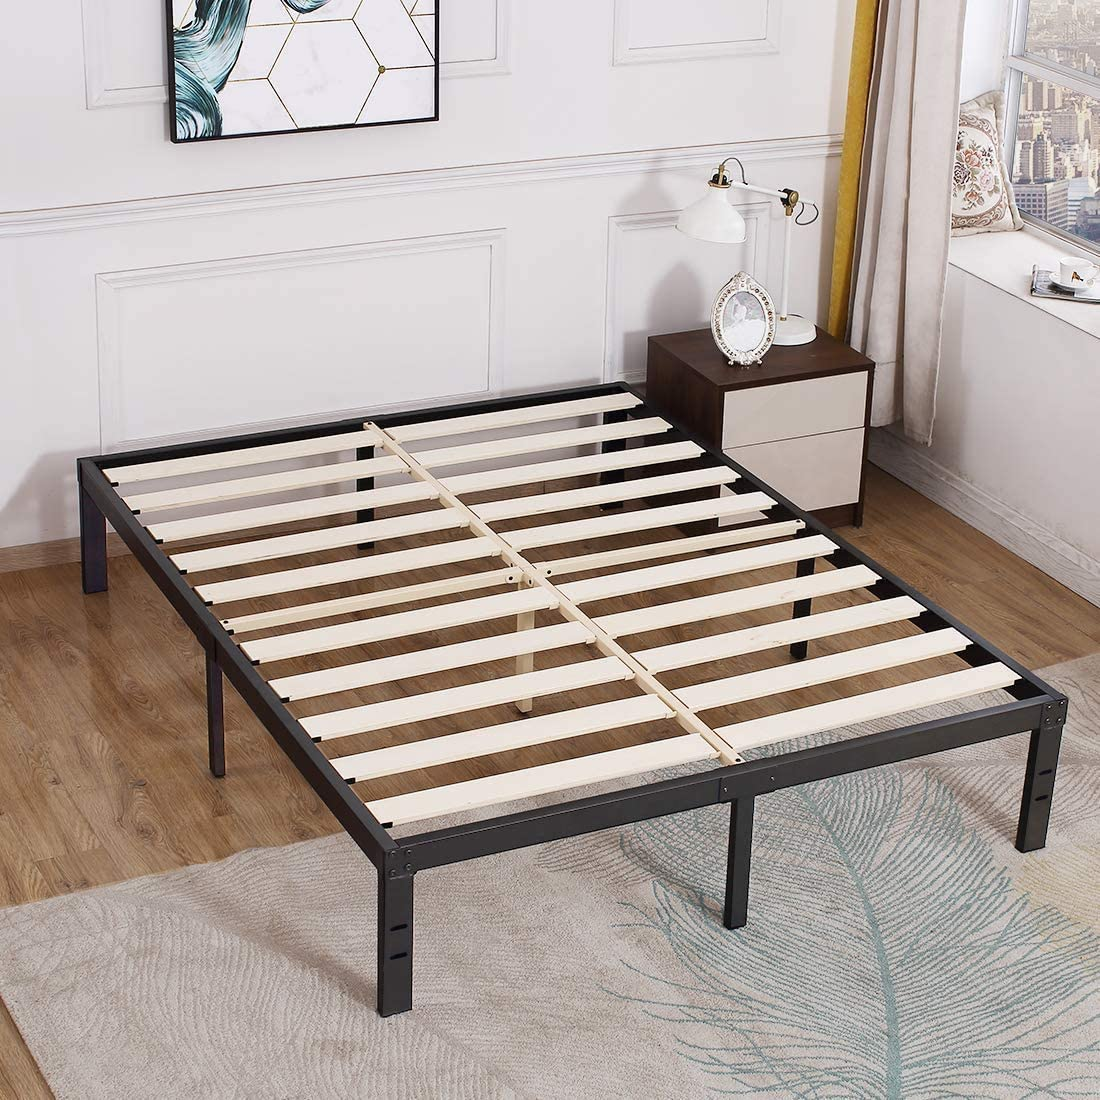 Tatago 3500lbs Upgraded Heavy Duty Wooden Slats King Platform Bed Frame 14 Inch Tall Mattress Foundation Extra Strong Support No Noise No Box Spring Needed Kitchen Dining